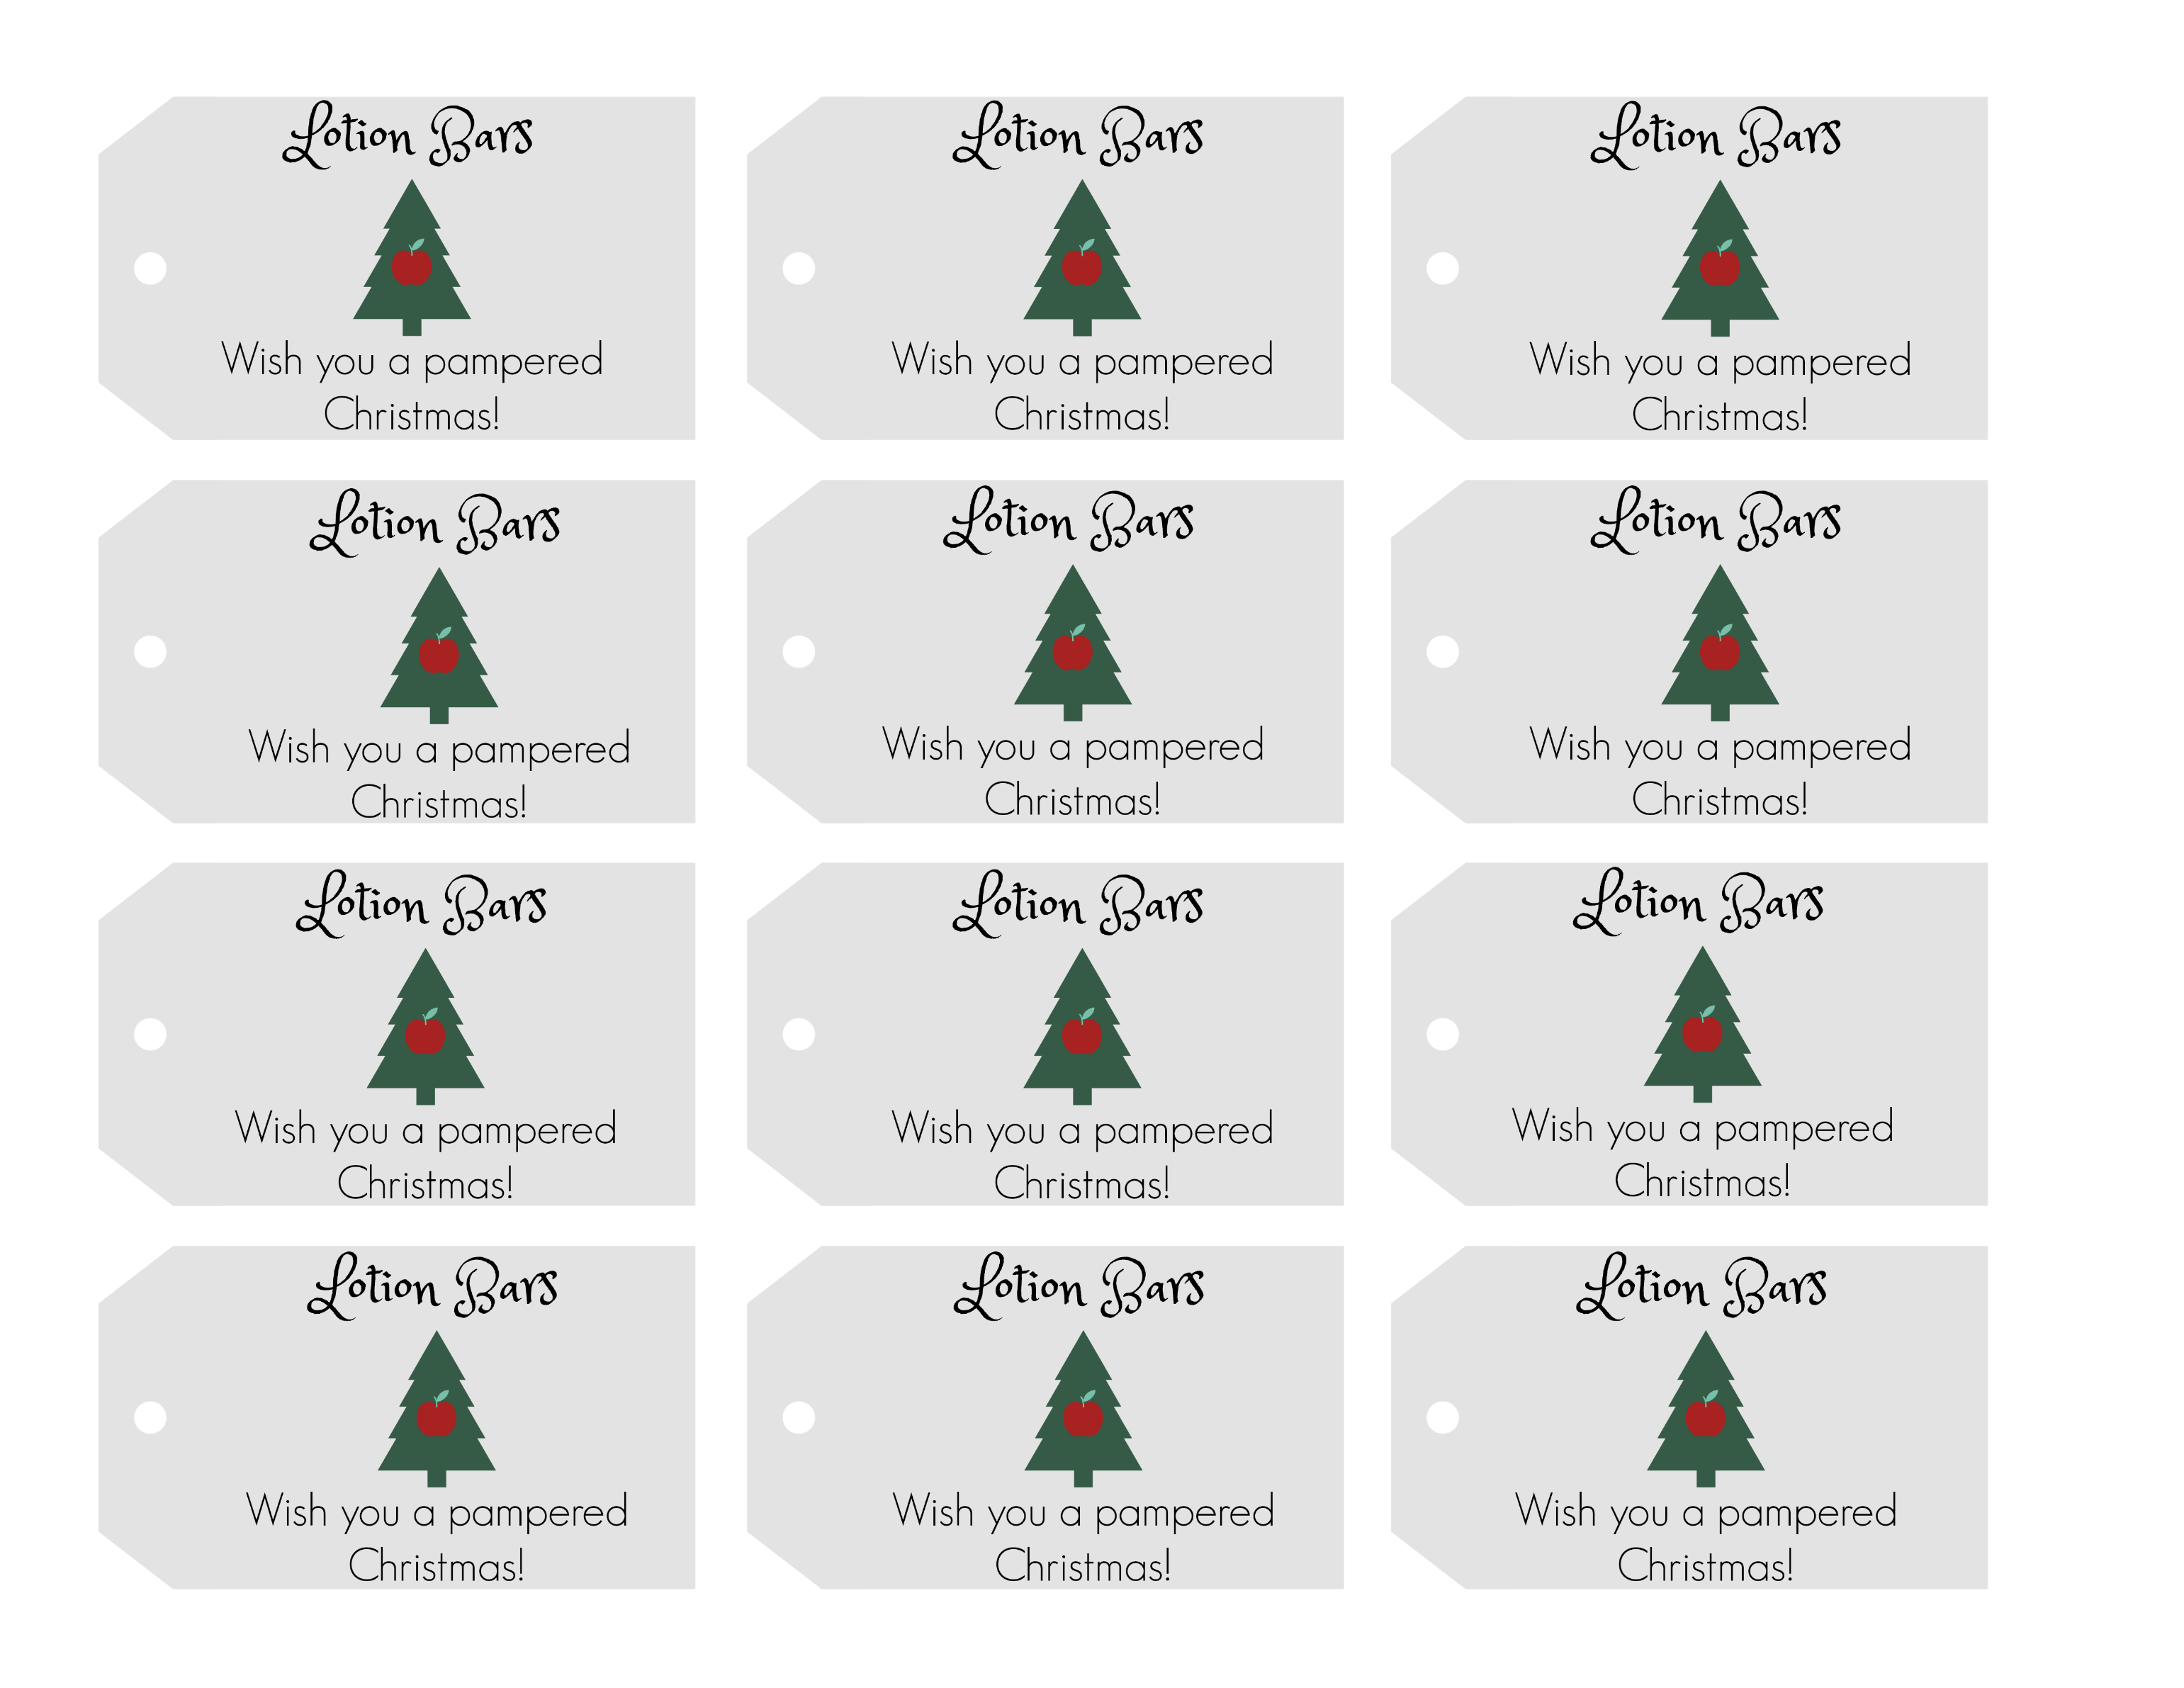 Lotion bars free printable gift tags for teacher Christmas gift. Wish you a pampered Christmas!